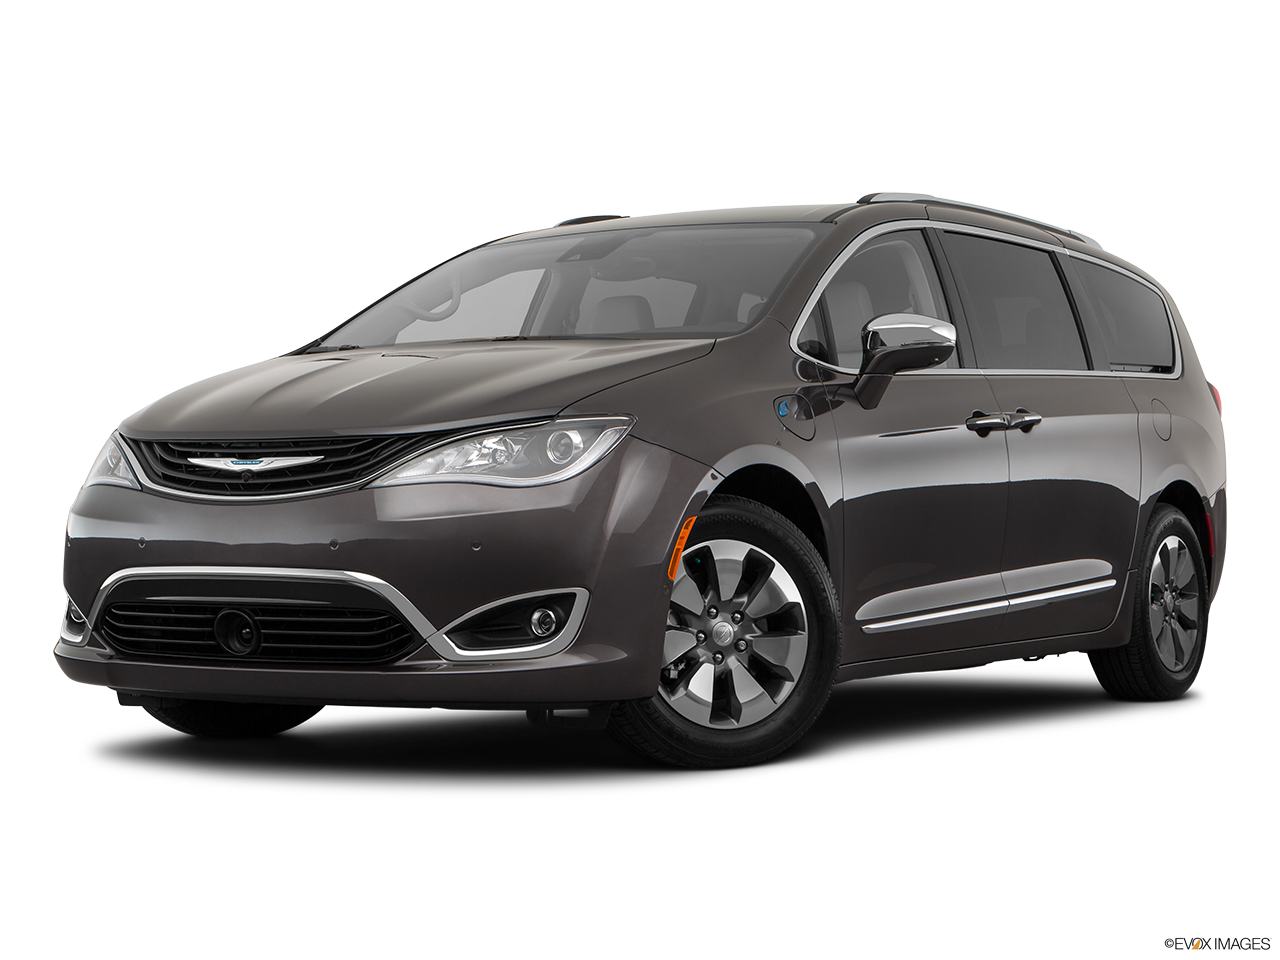 Three quart view of the Chrysler Pacifica